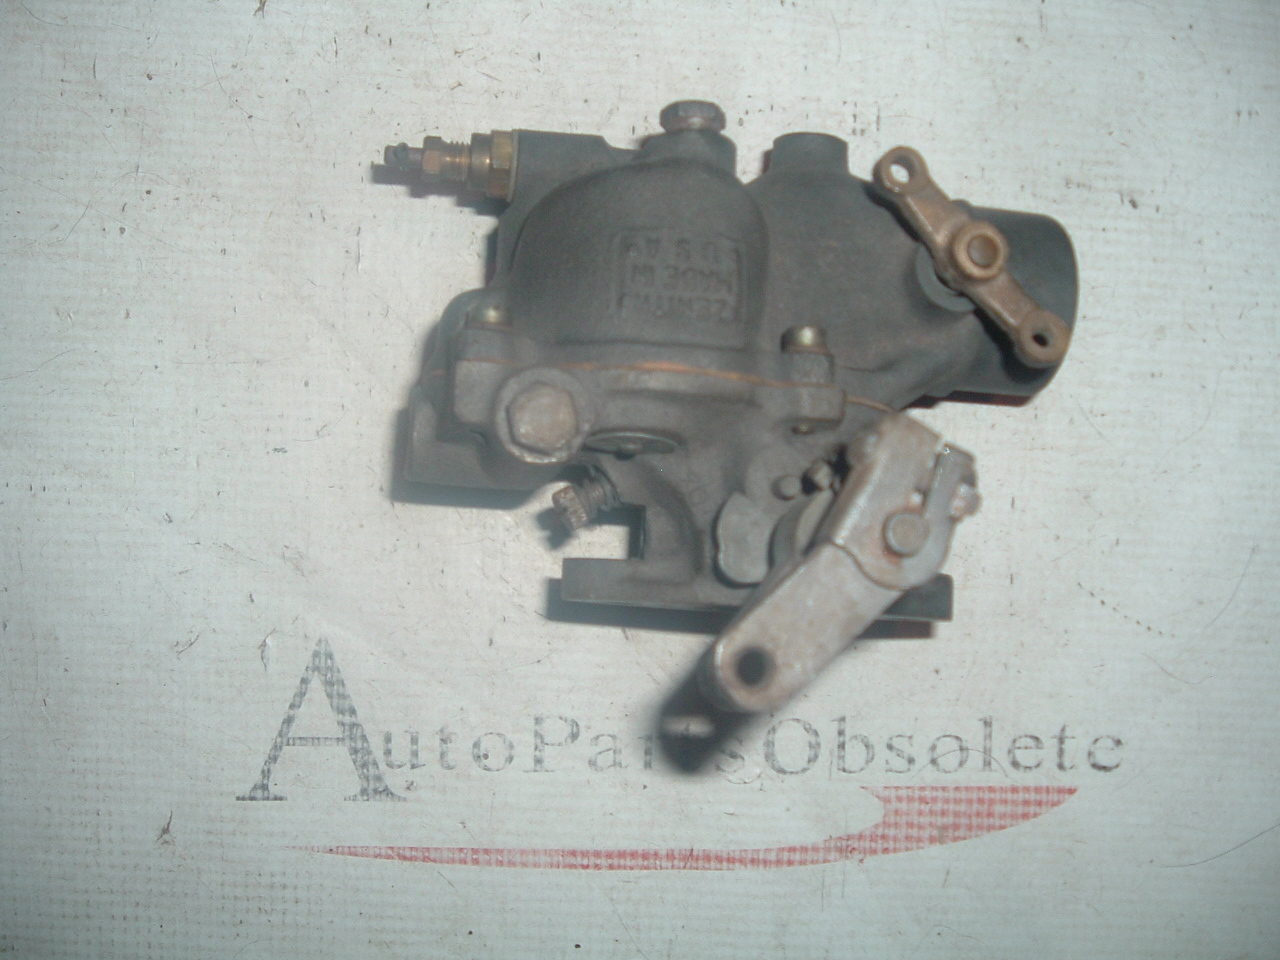 NOS & Rebuilt Carburetors